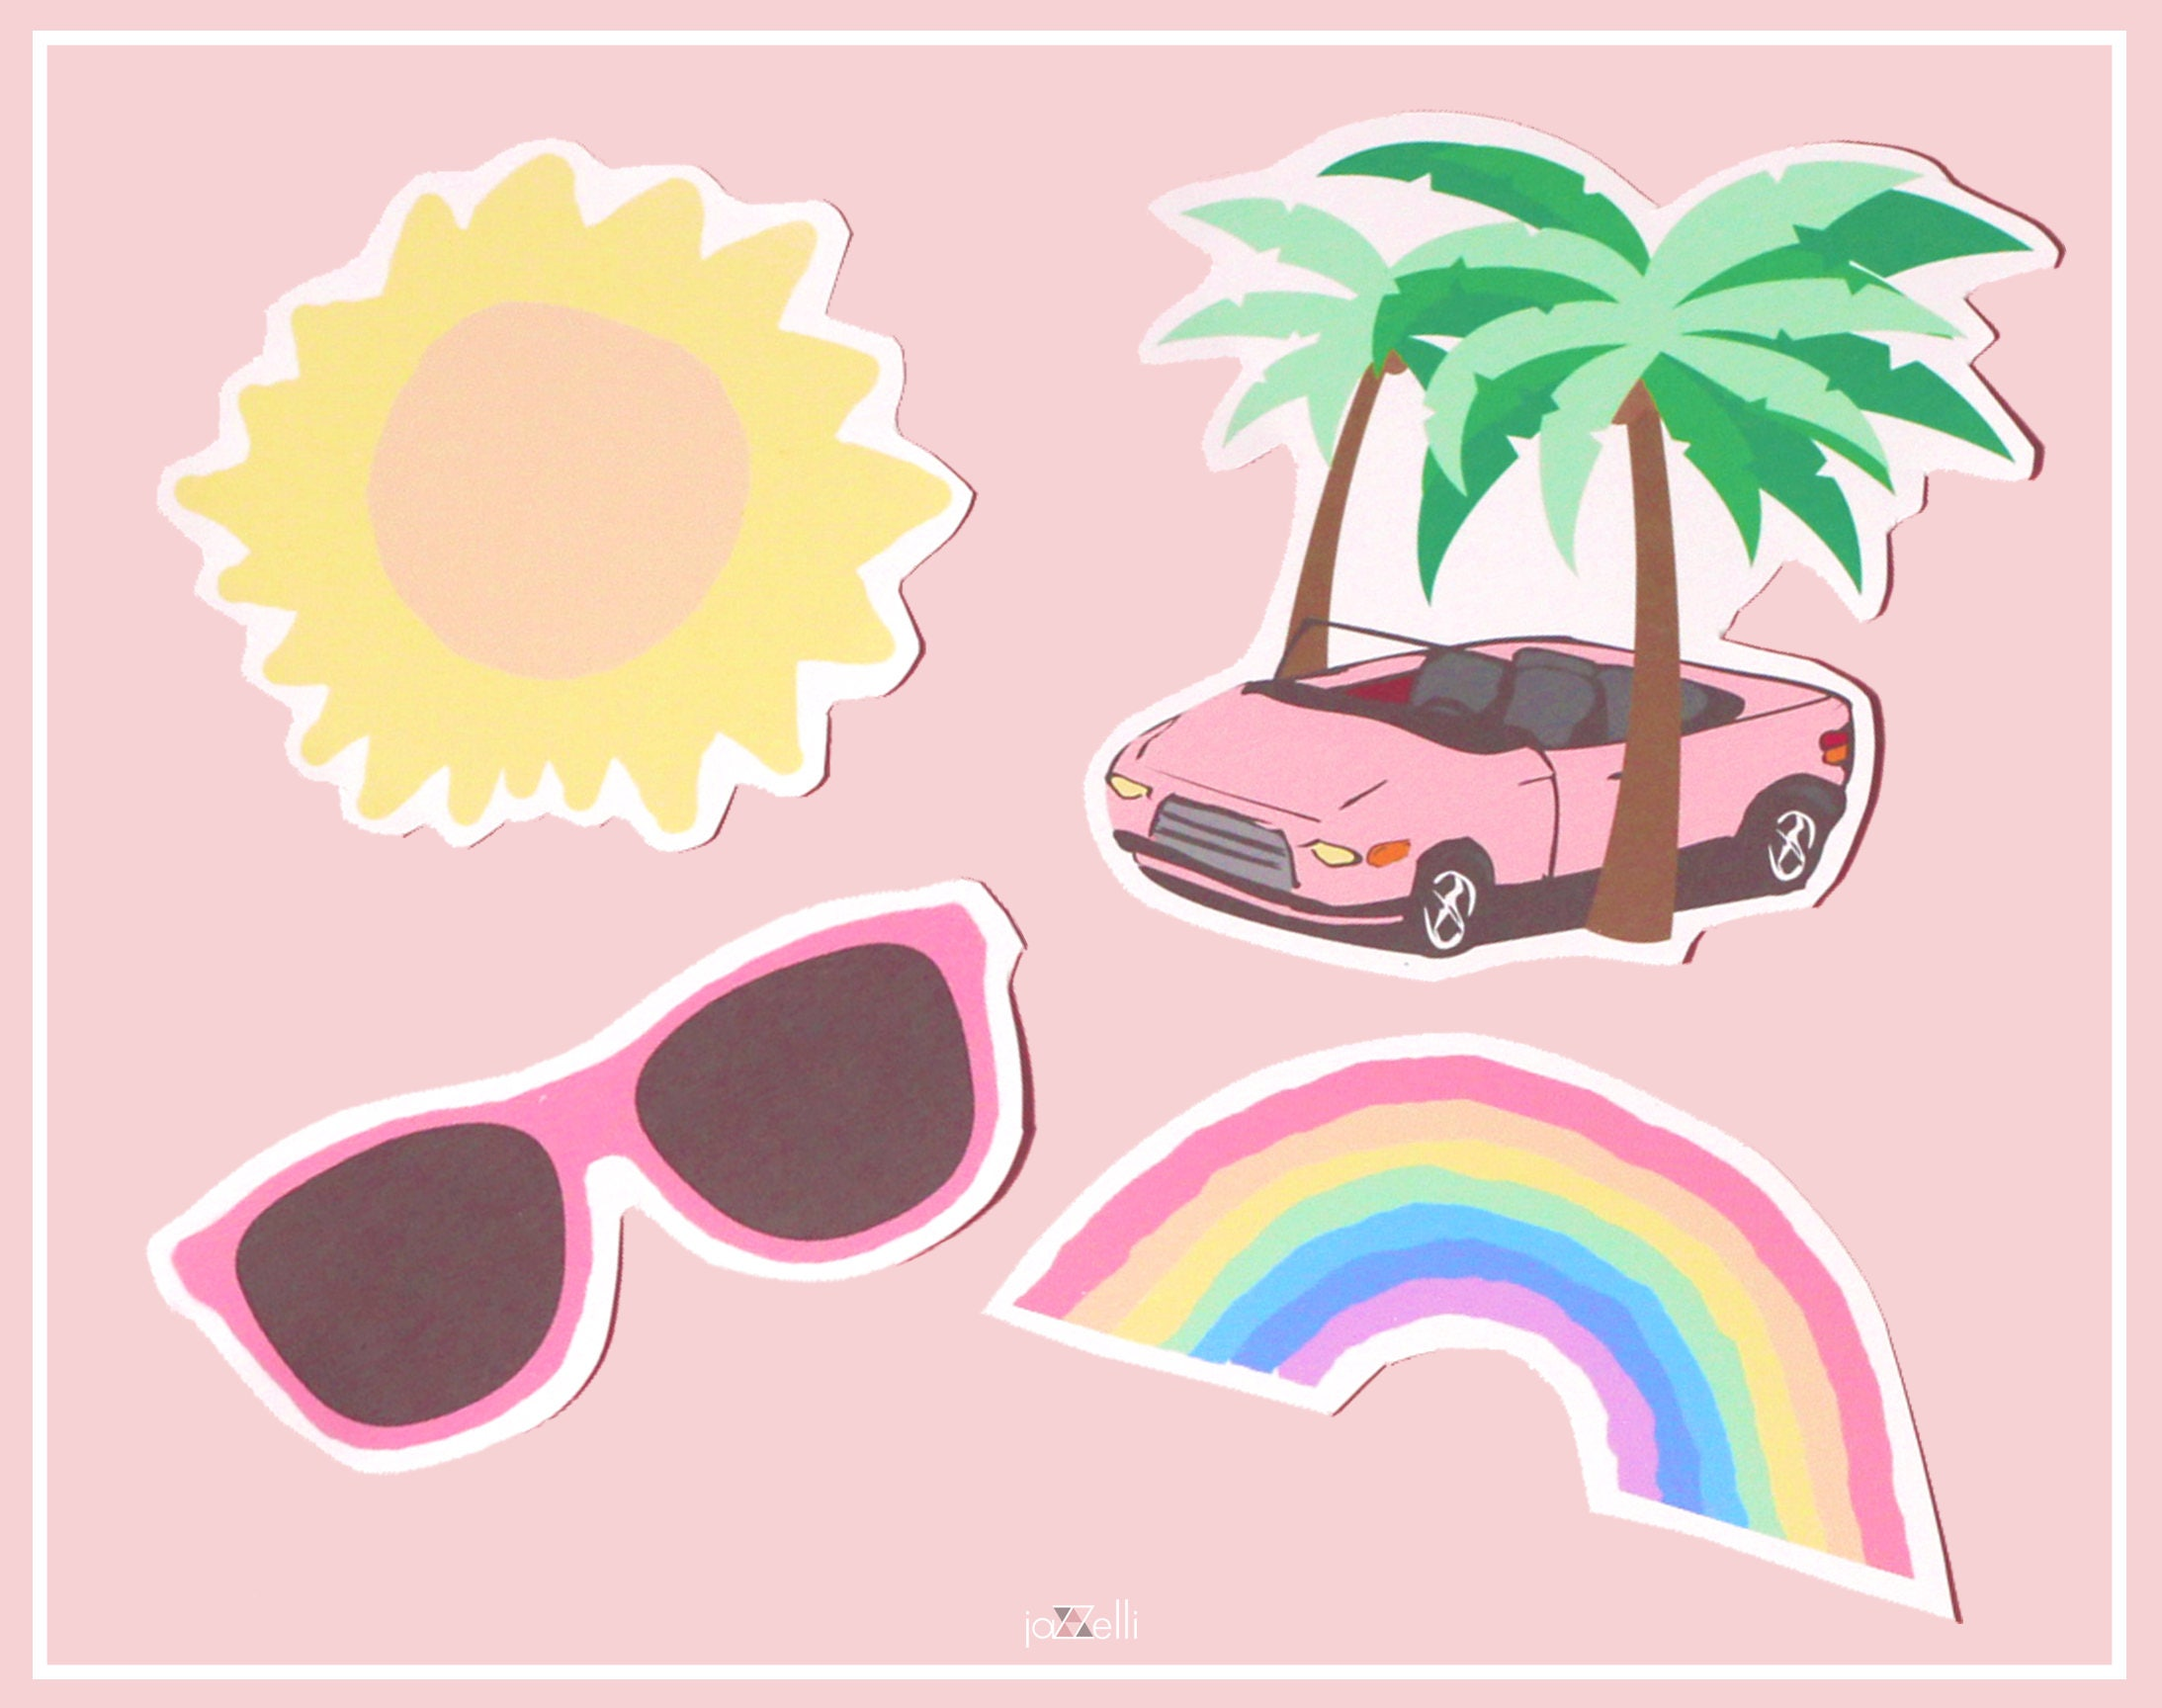 Summer Vibes Stickers Cute Stickers Tumblr Stickers for Cute Stickers Tumblr Hd  35fsj